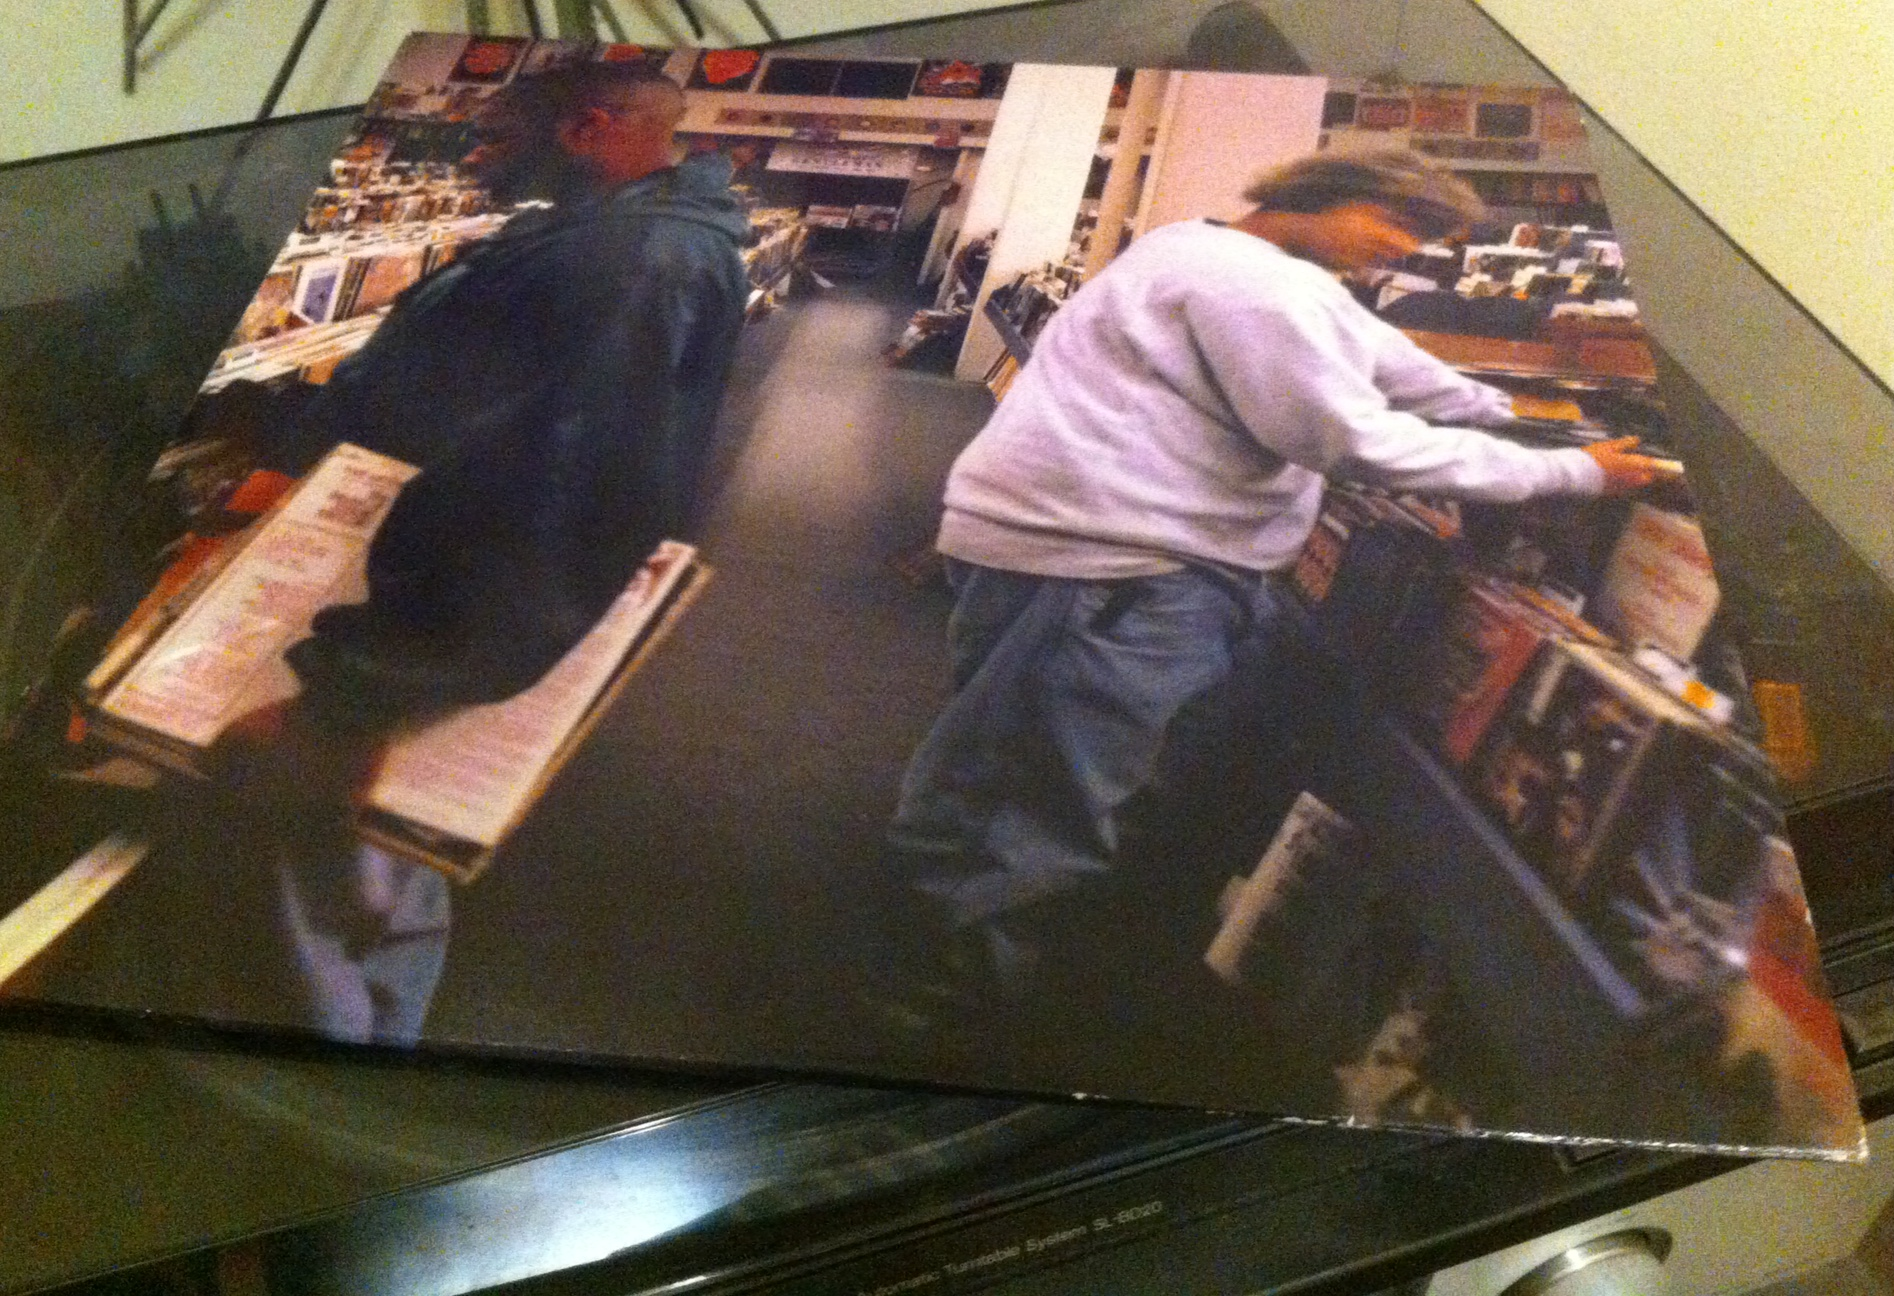 dj shadow essay Check out the outsider by dj shadow on amazon music stream ad-free or purchase cd's and mp3s now on amazoncom.